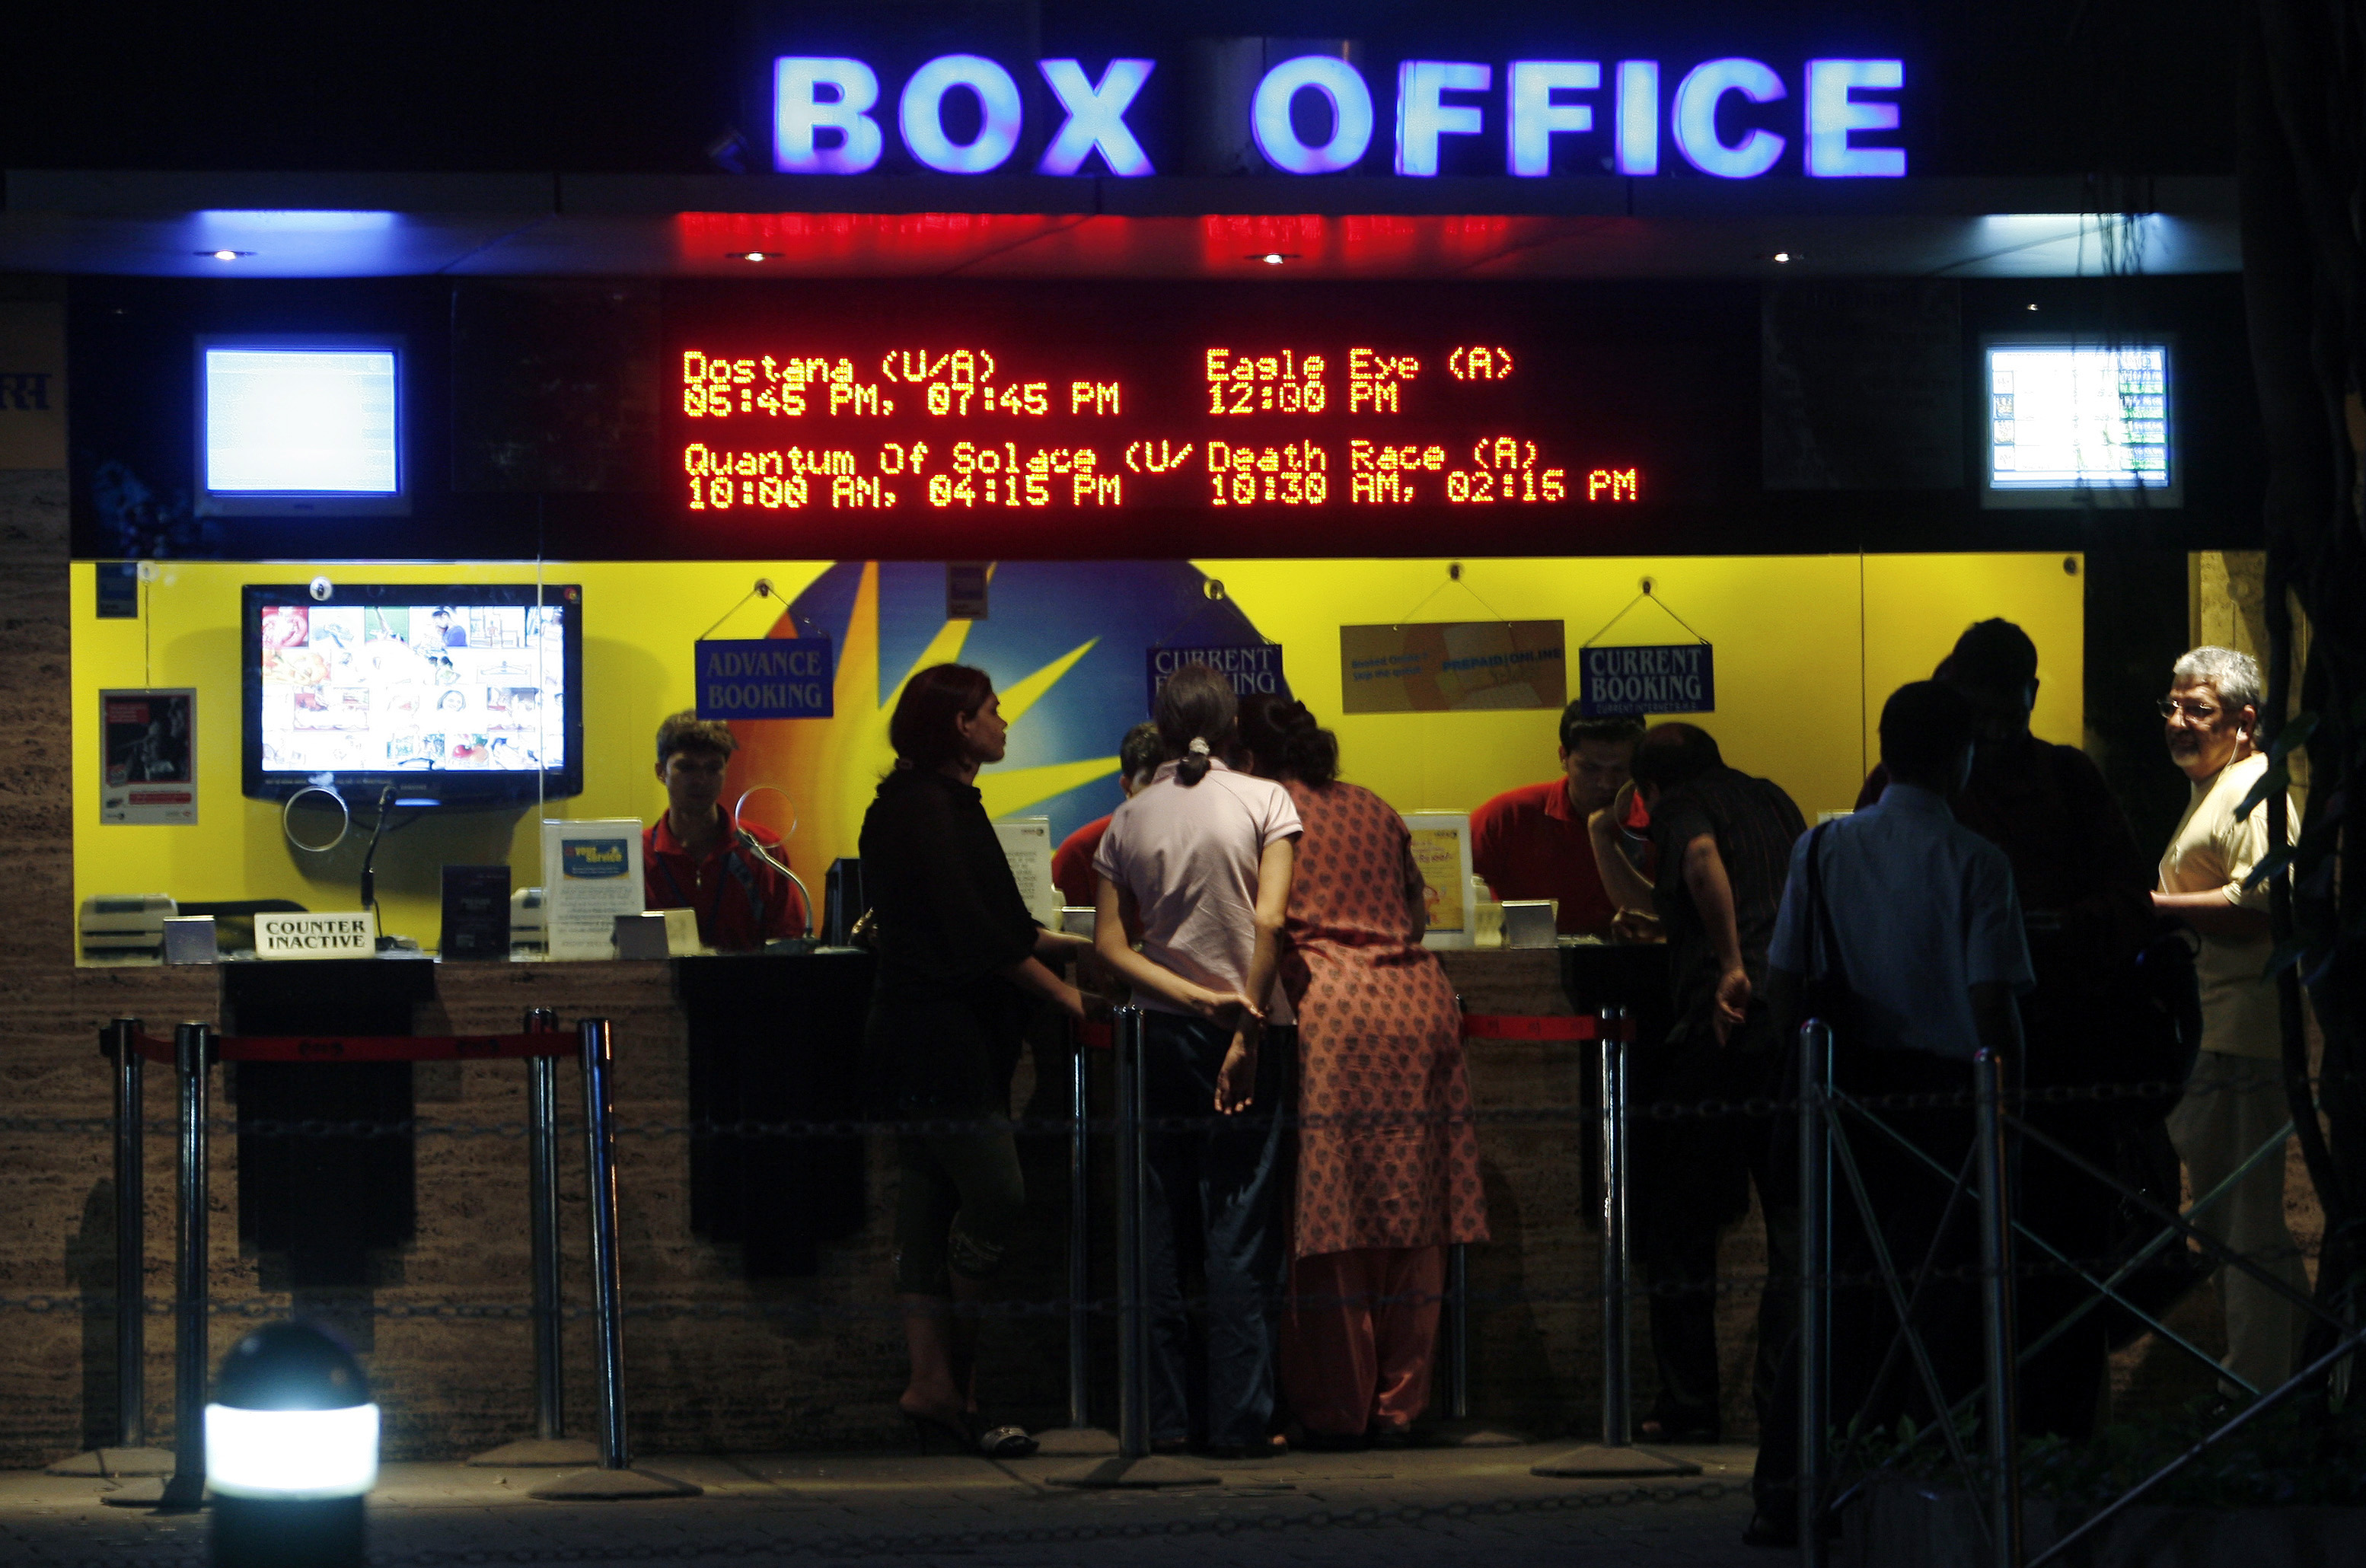 39 star wars the force awakens 39 in india will bollywood 39 s big ticket movies overshadow hollywood - Indian movies box office records ...